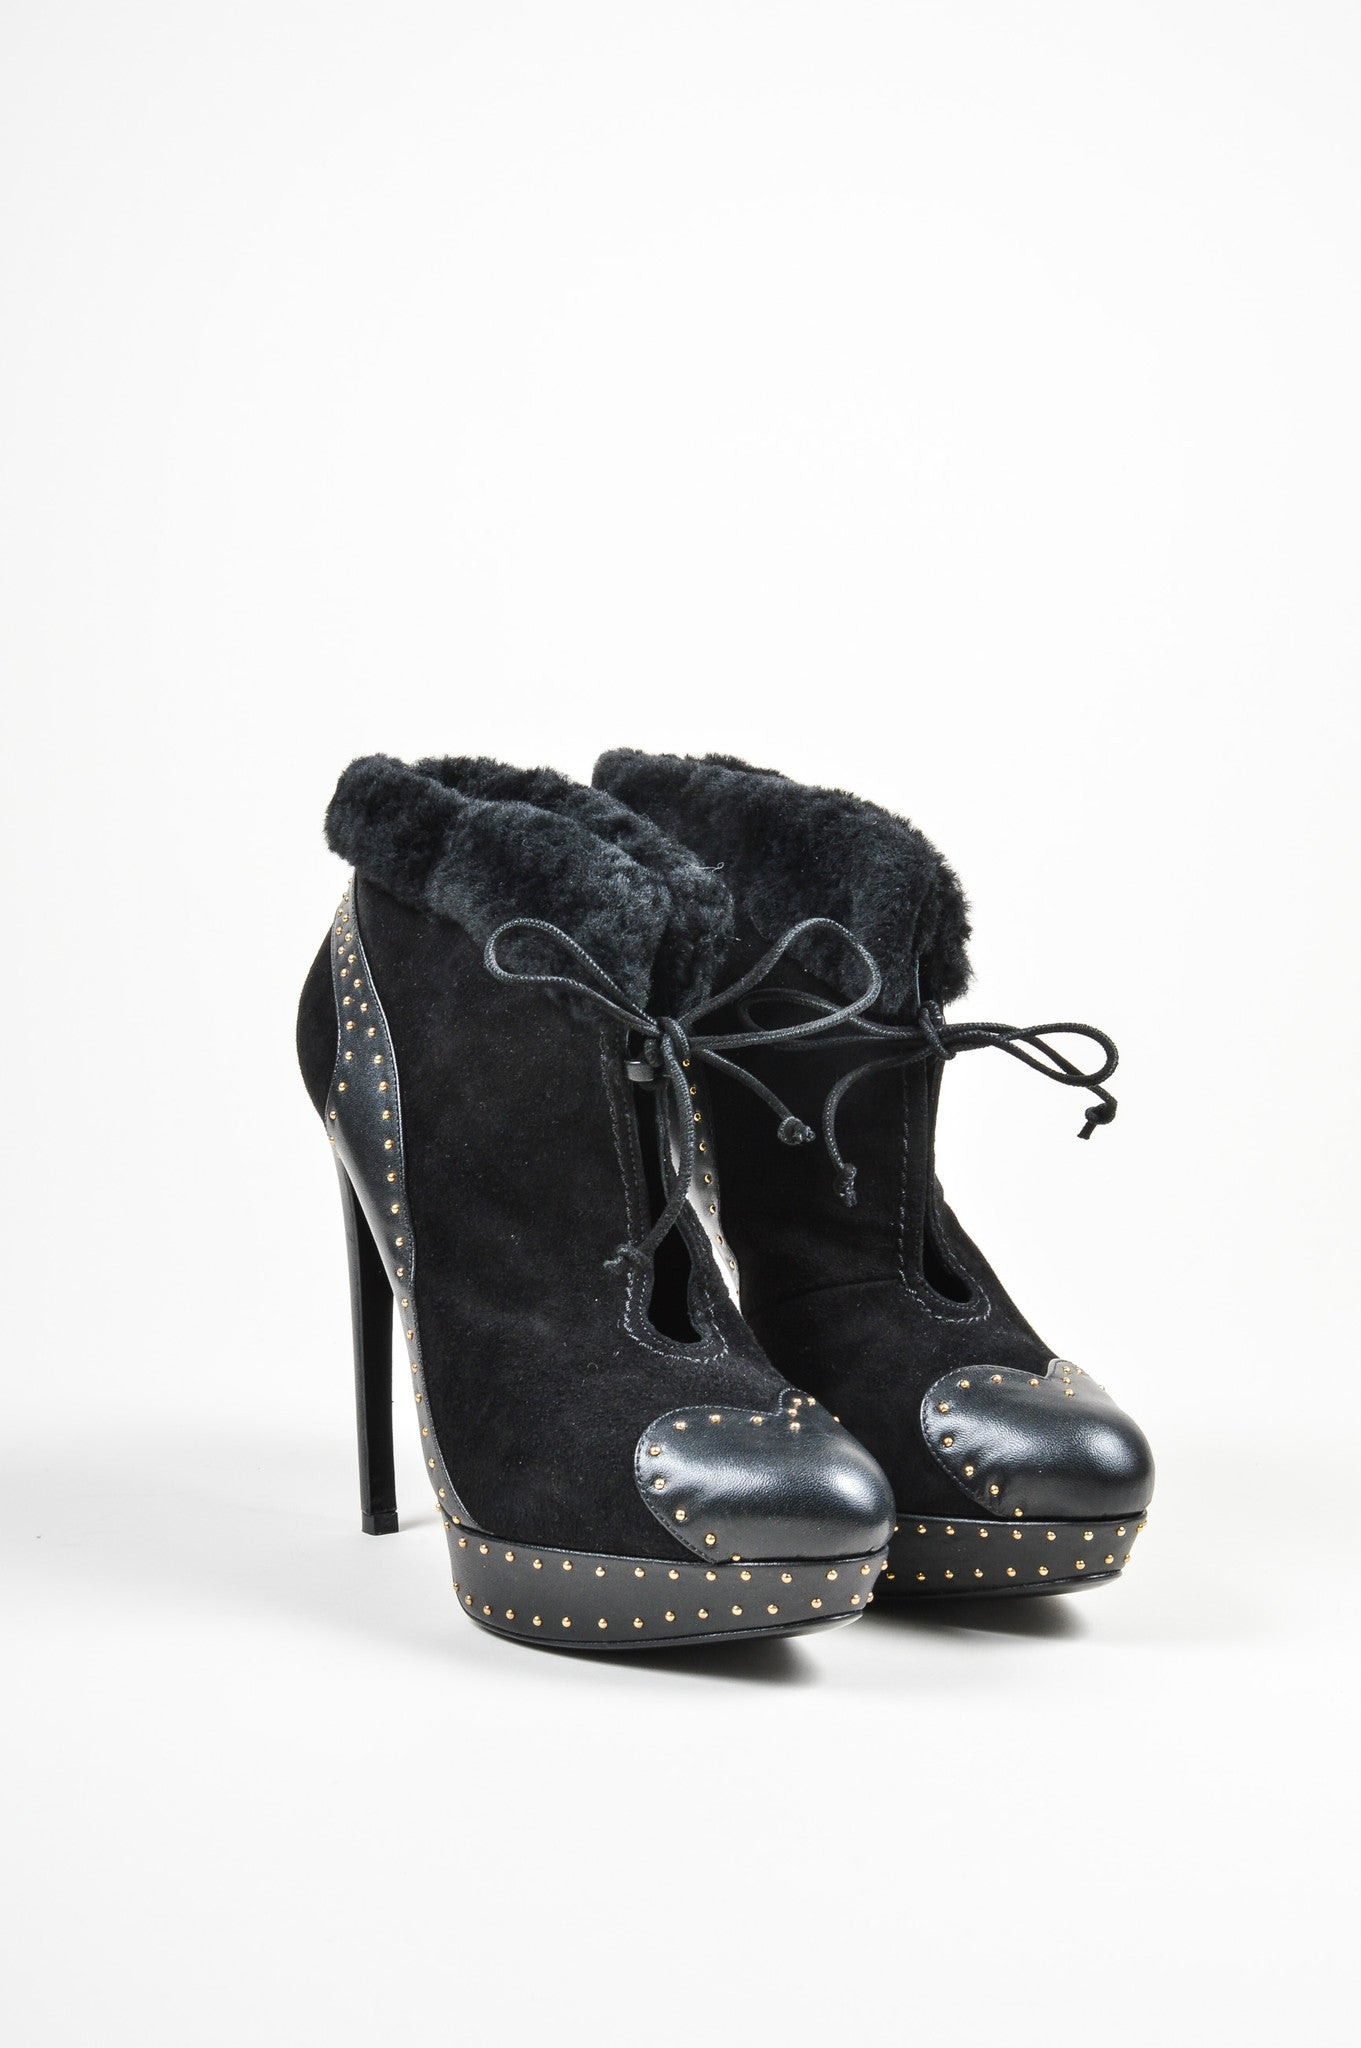 Black Alexander McQueen Suede Leather Studded Shearling Ankle Booties Frontview